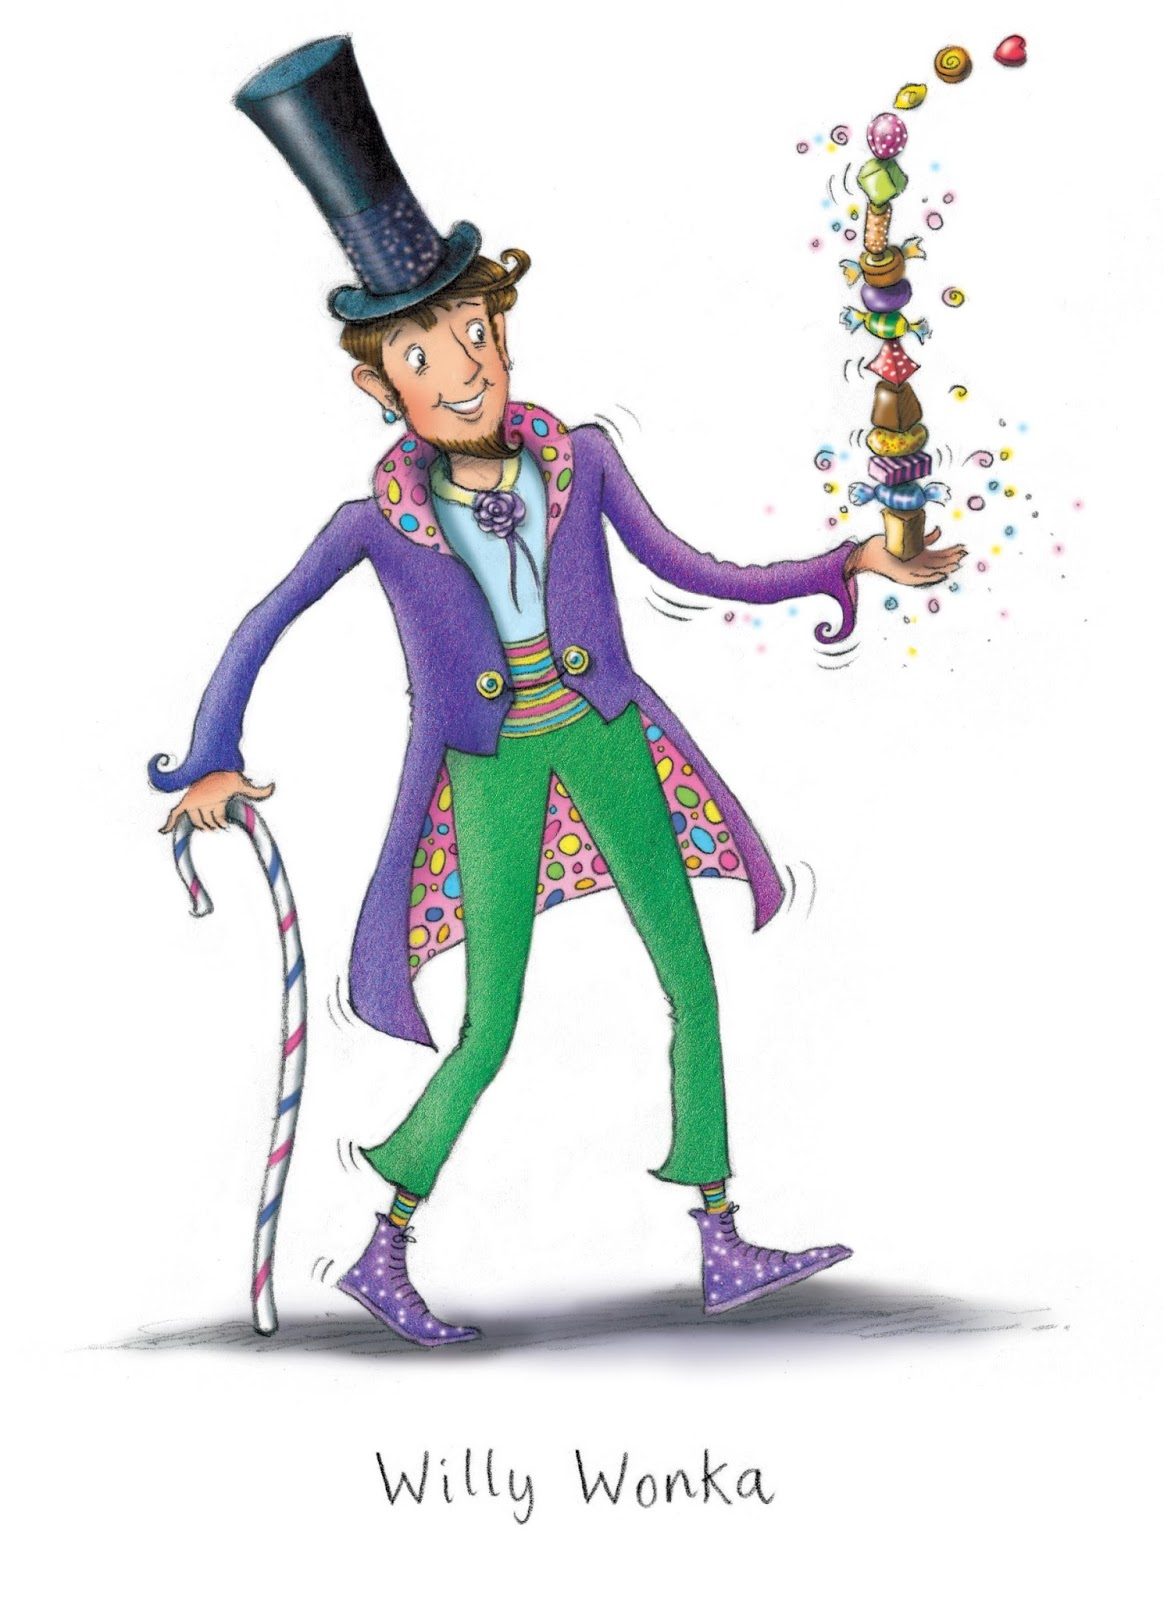 marys illustration blog charlie and the chocolate factory